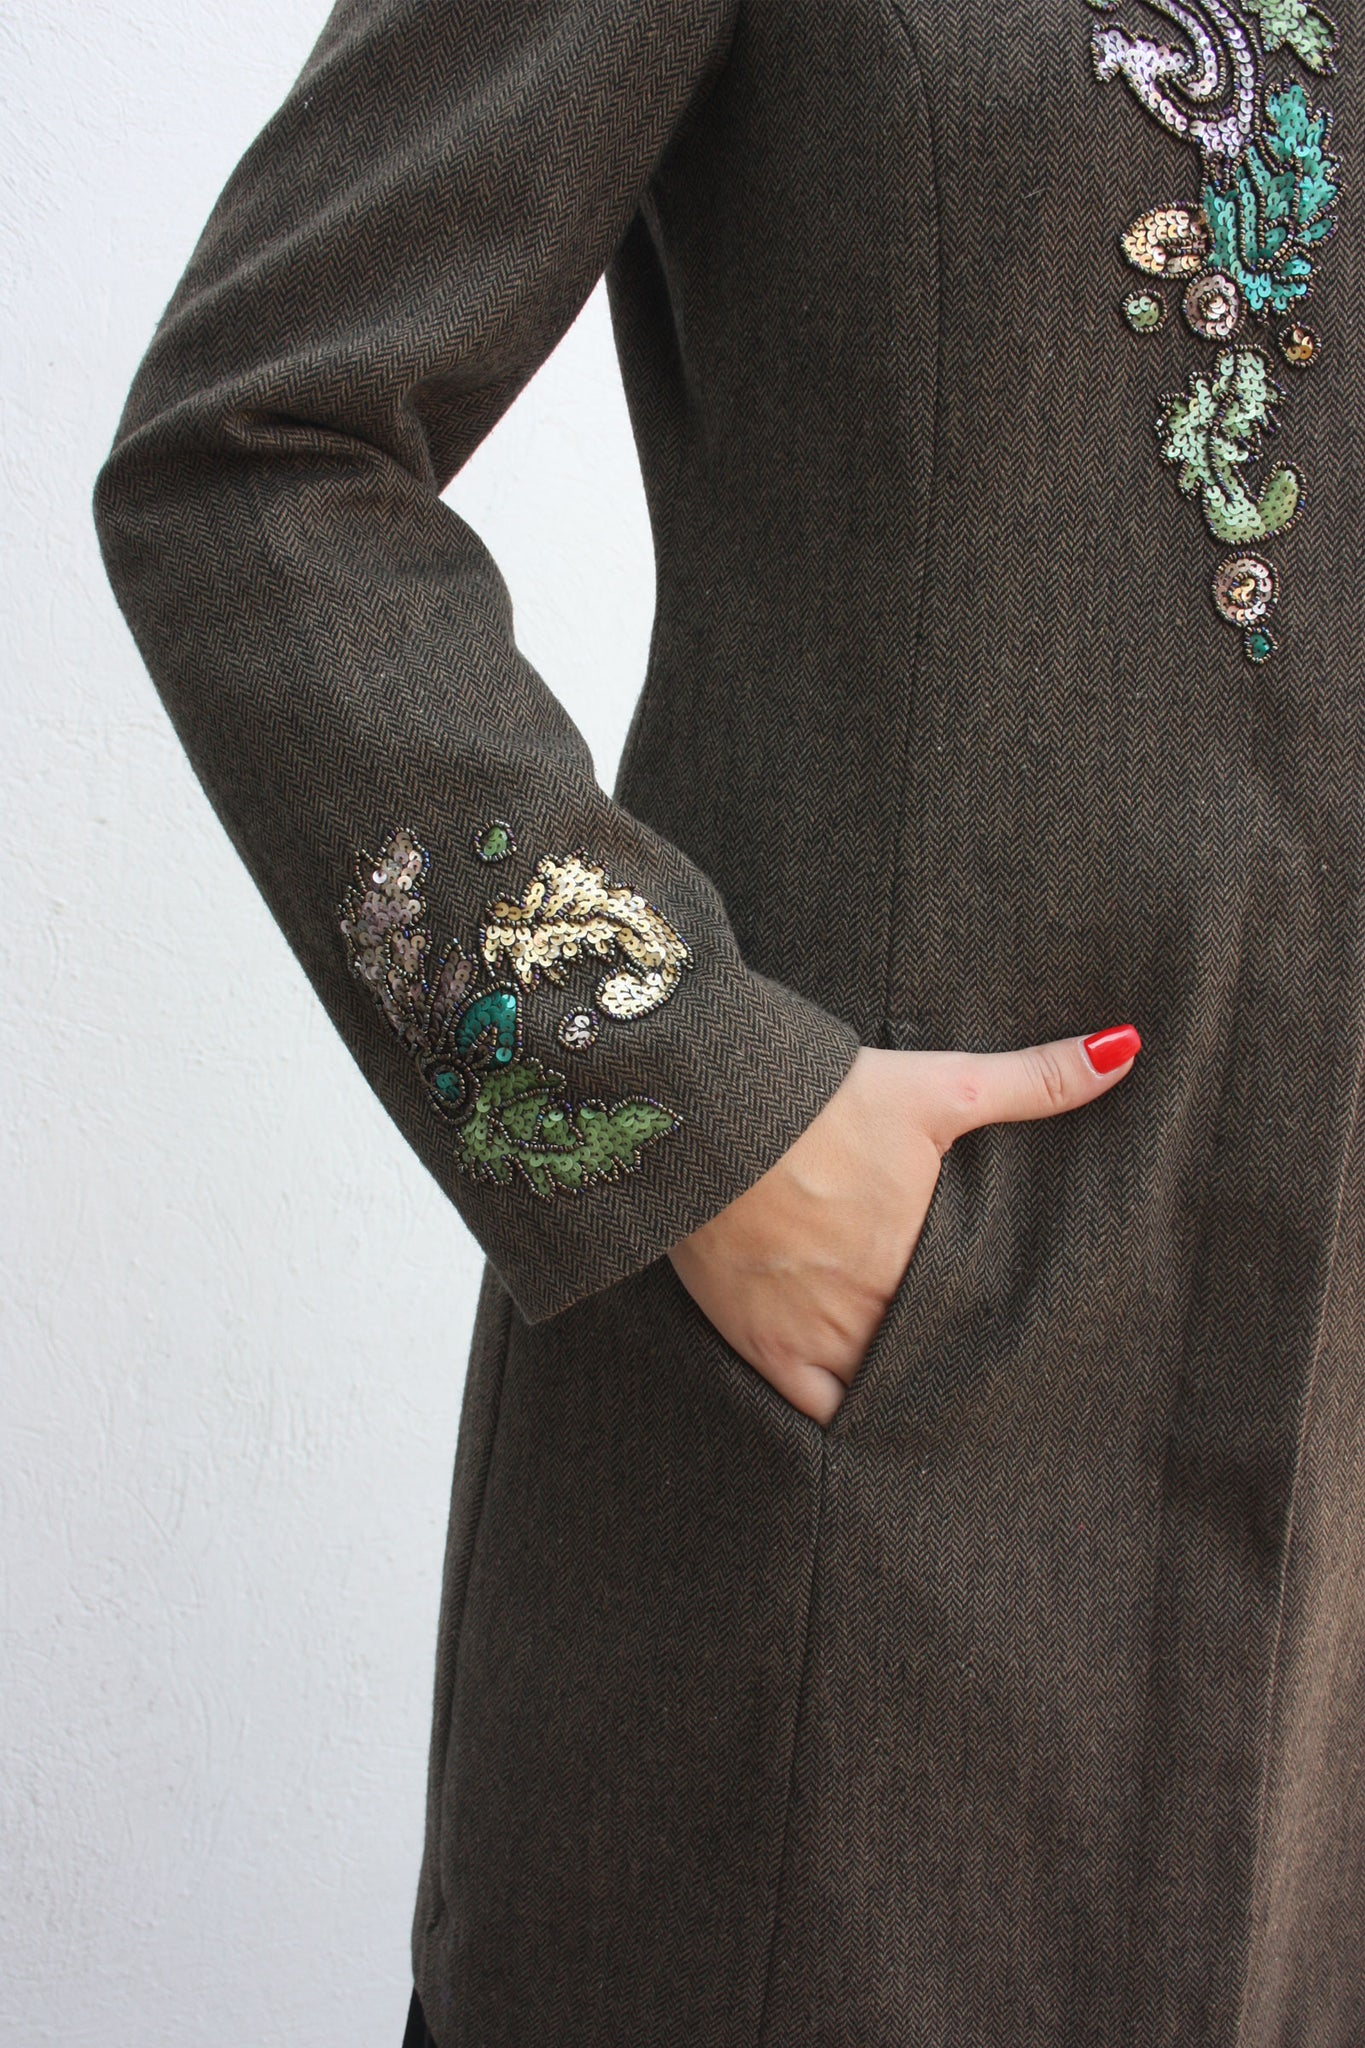 Wool vintage beaded coat - Shop SoLovesVintage